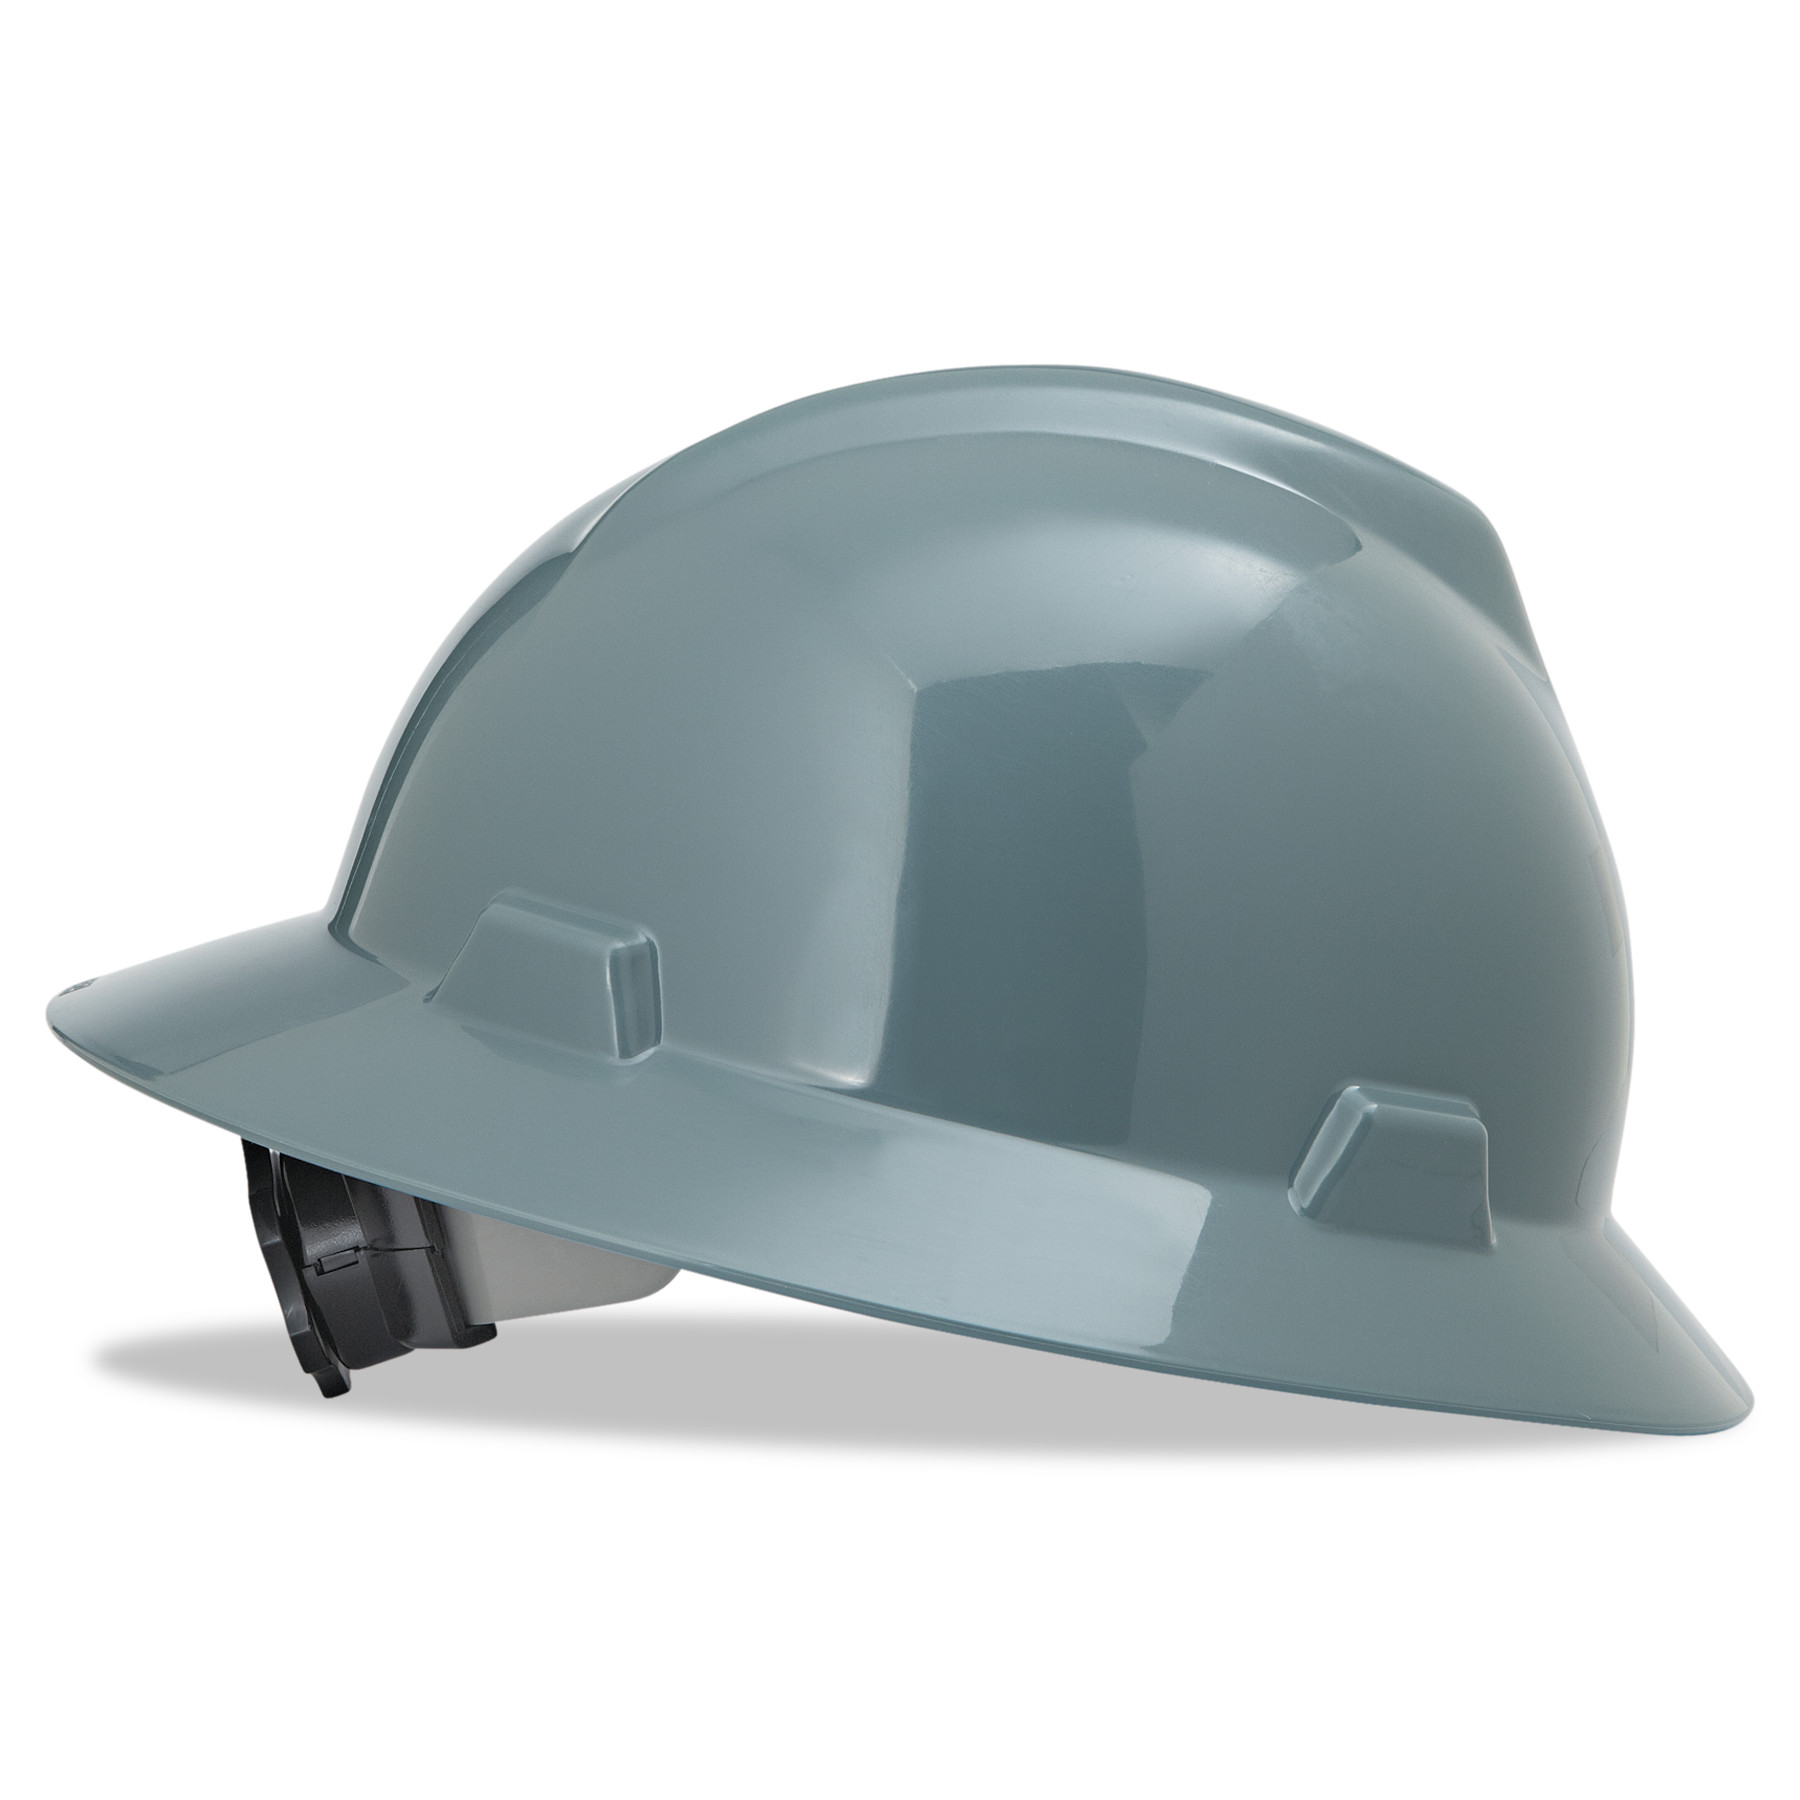 MSA V-Gard Full-Brim Hard Hats, Ratchet Suspension, Size 6 1 2 8, Gray by SAFETY WORKS